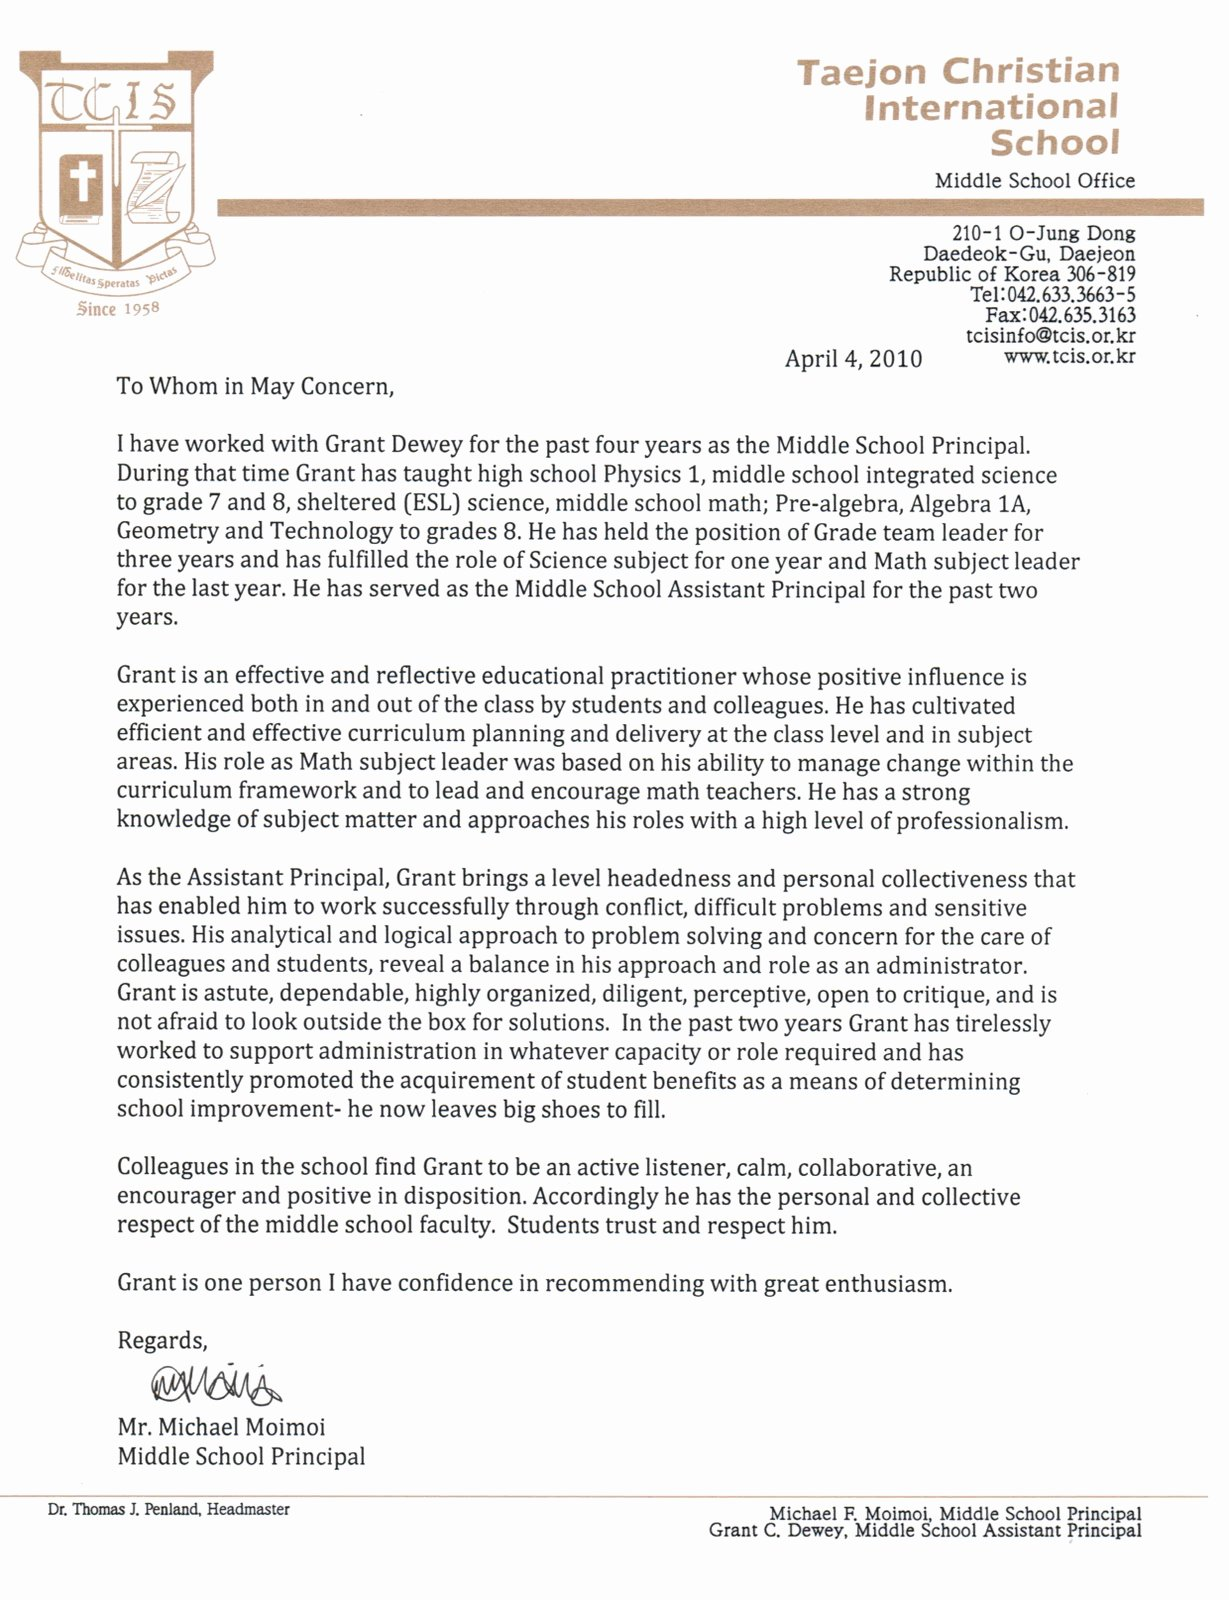 Letter Of Recommendation for Principal Awesome Dynamic Dewey Systems Letter Of Reference Principal at Tcis